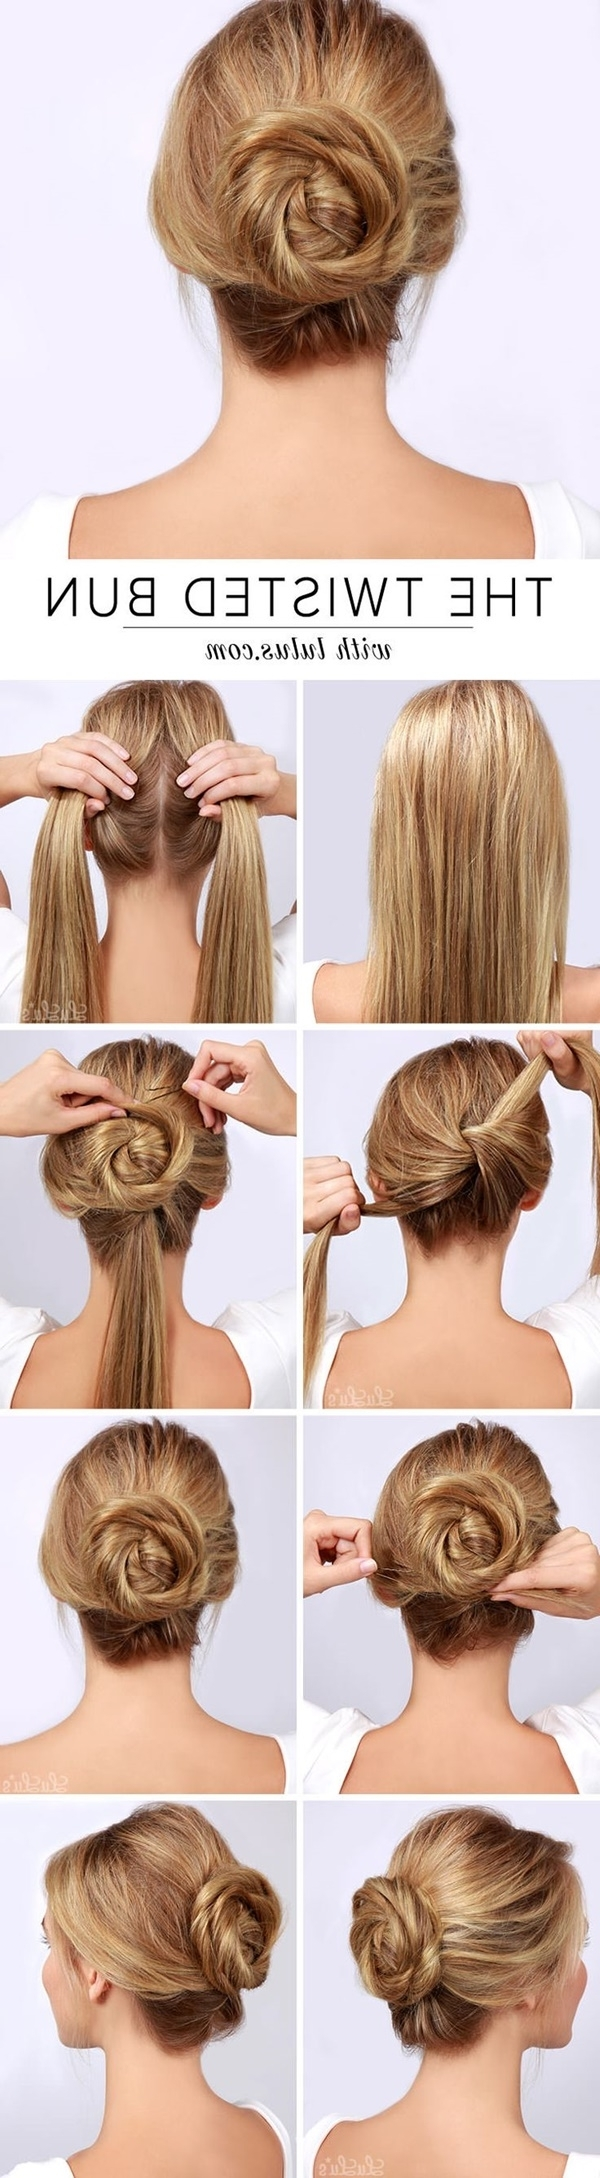 2017 Cute Easy Wedding Hairstyles For Long Hair Regarding The Easy Bun Hairstyles For Long Hair Women Unbelievable In A School (View 2 of 15)